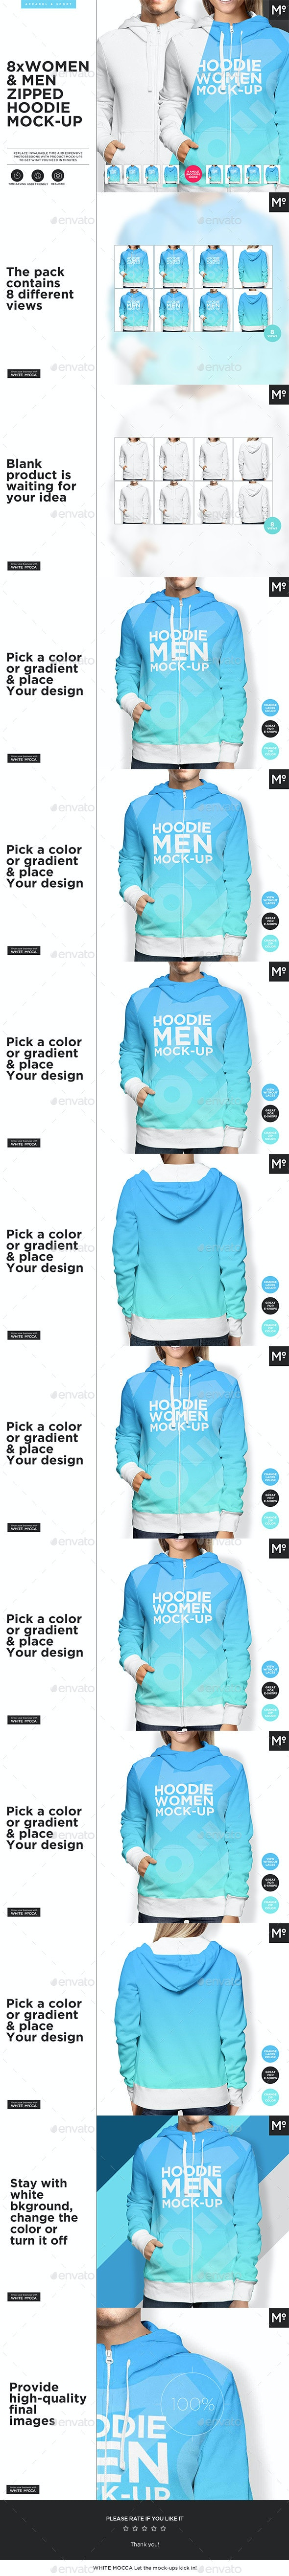 Women and Men Zipped Hoodie Mock-up - Miscellaneous Apparel